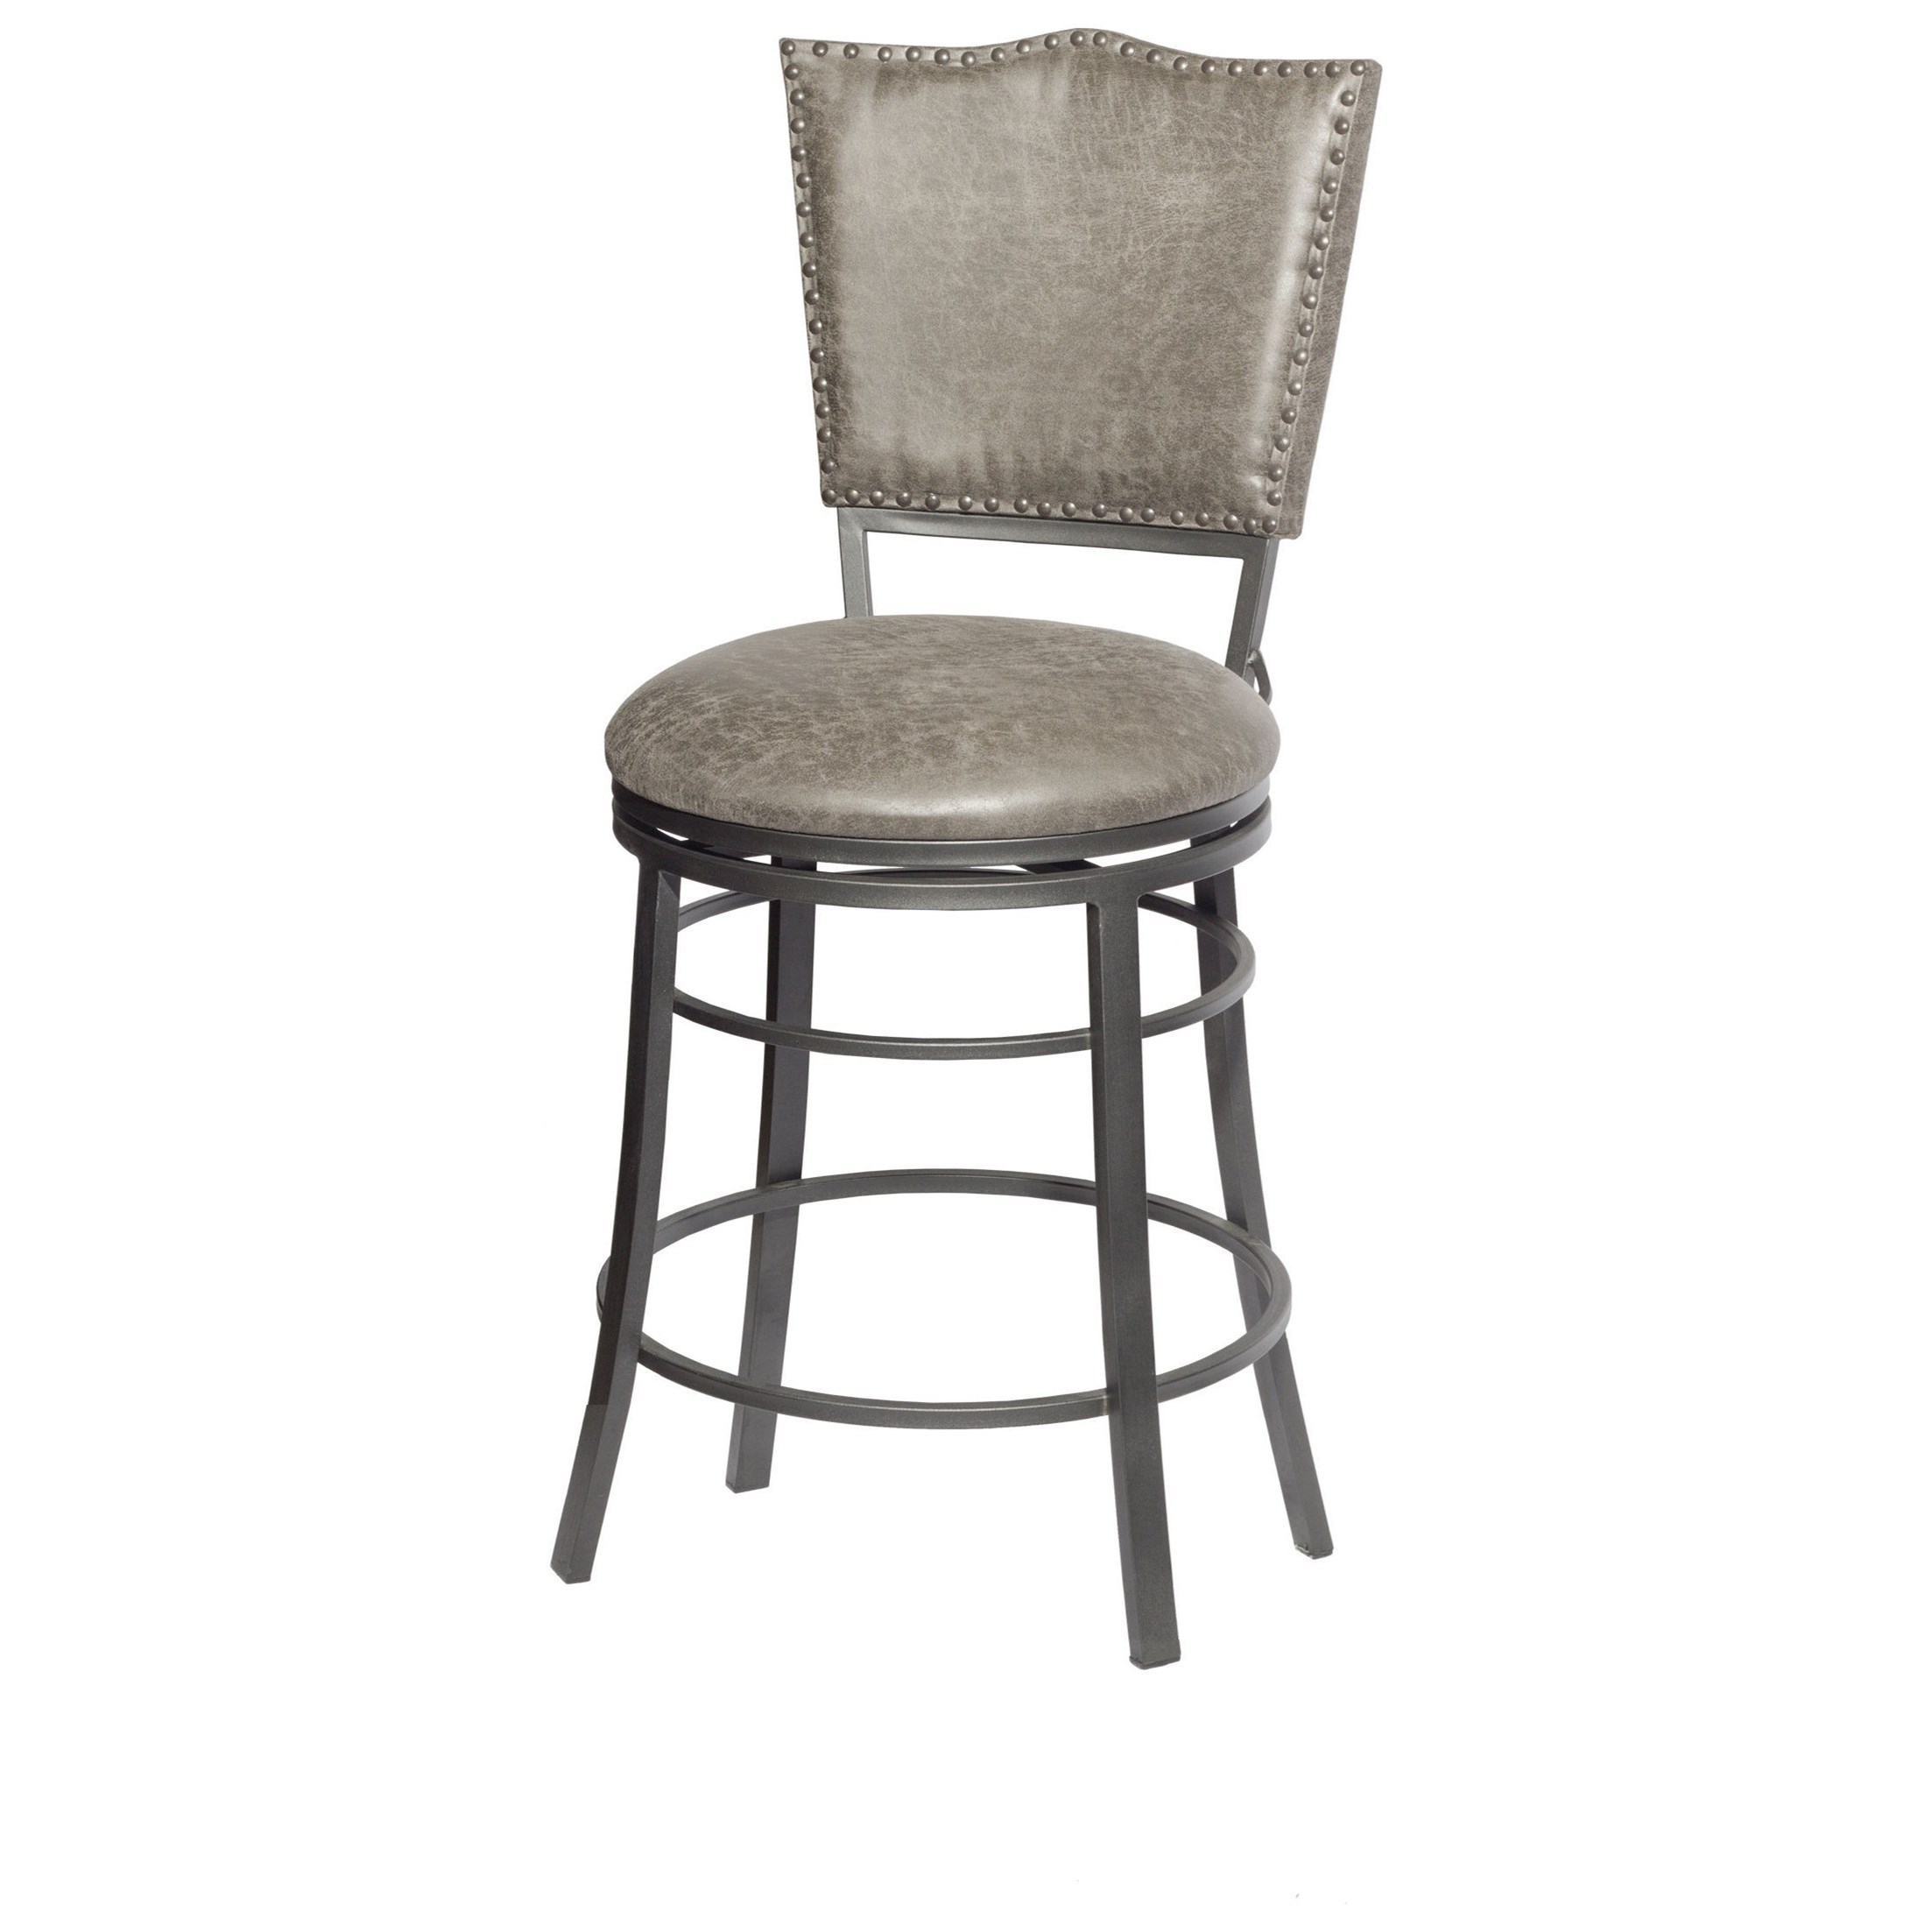 Transitional Swivel Counter Stool with Nailhead Trim and Scratch Resistant Finish